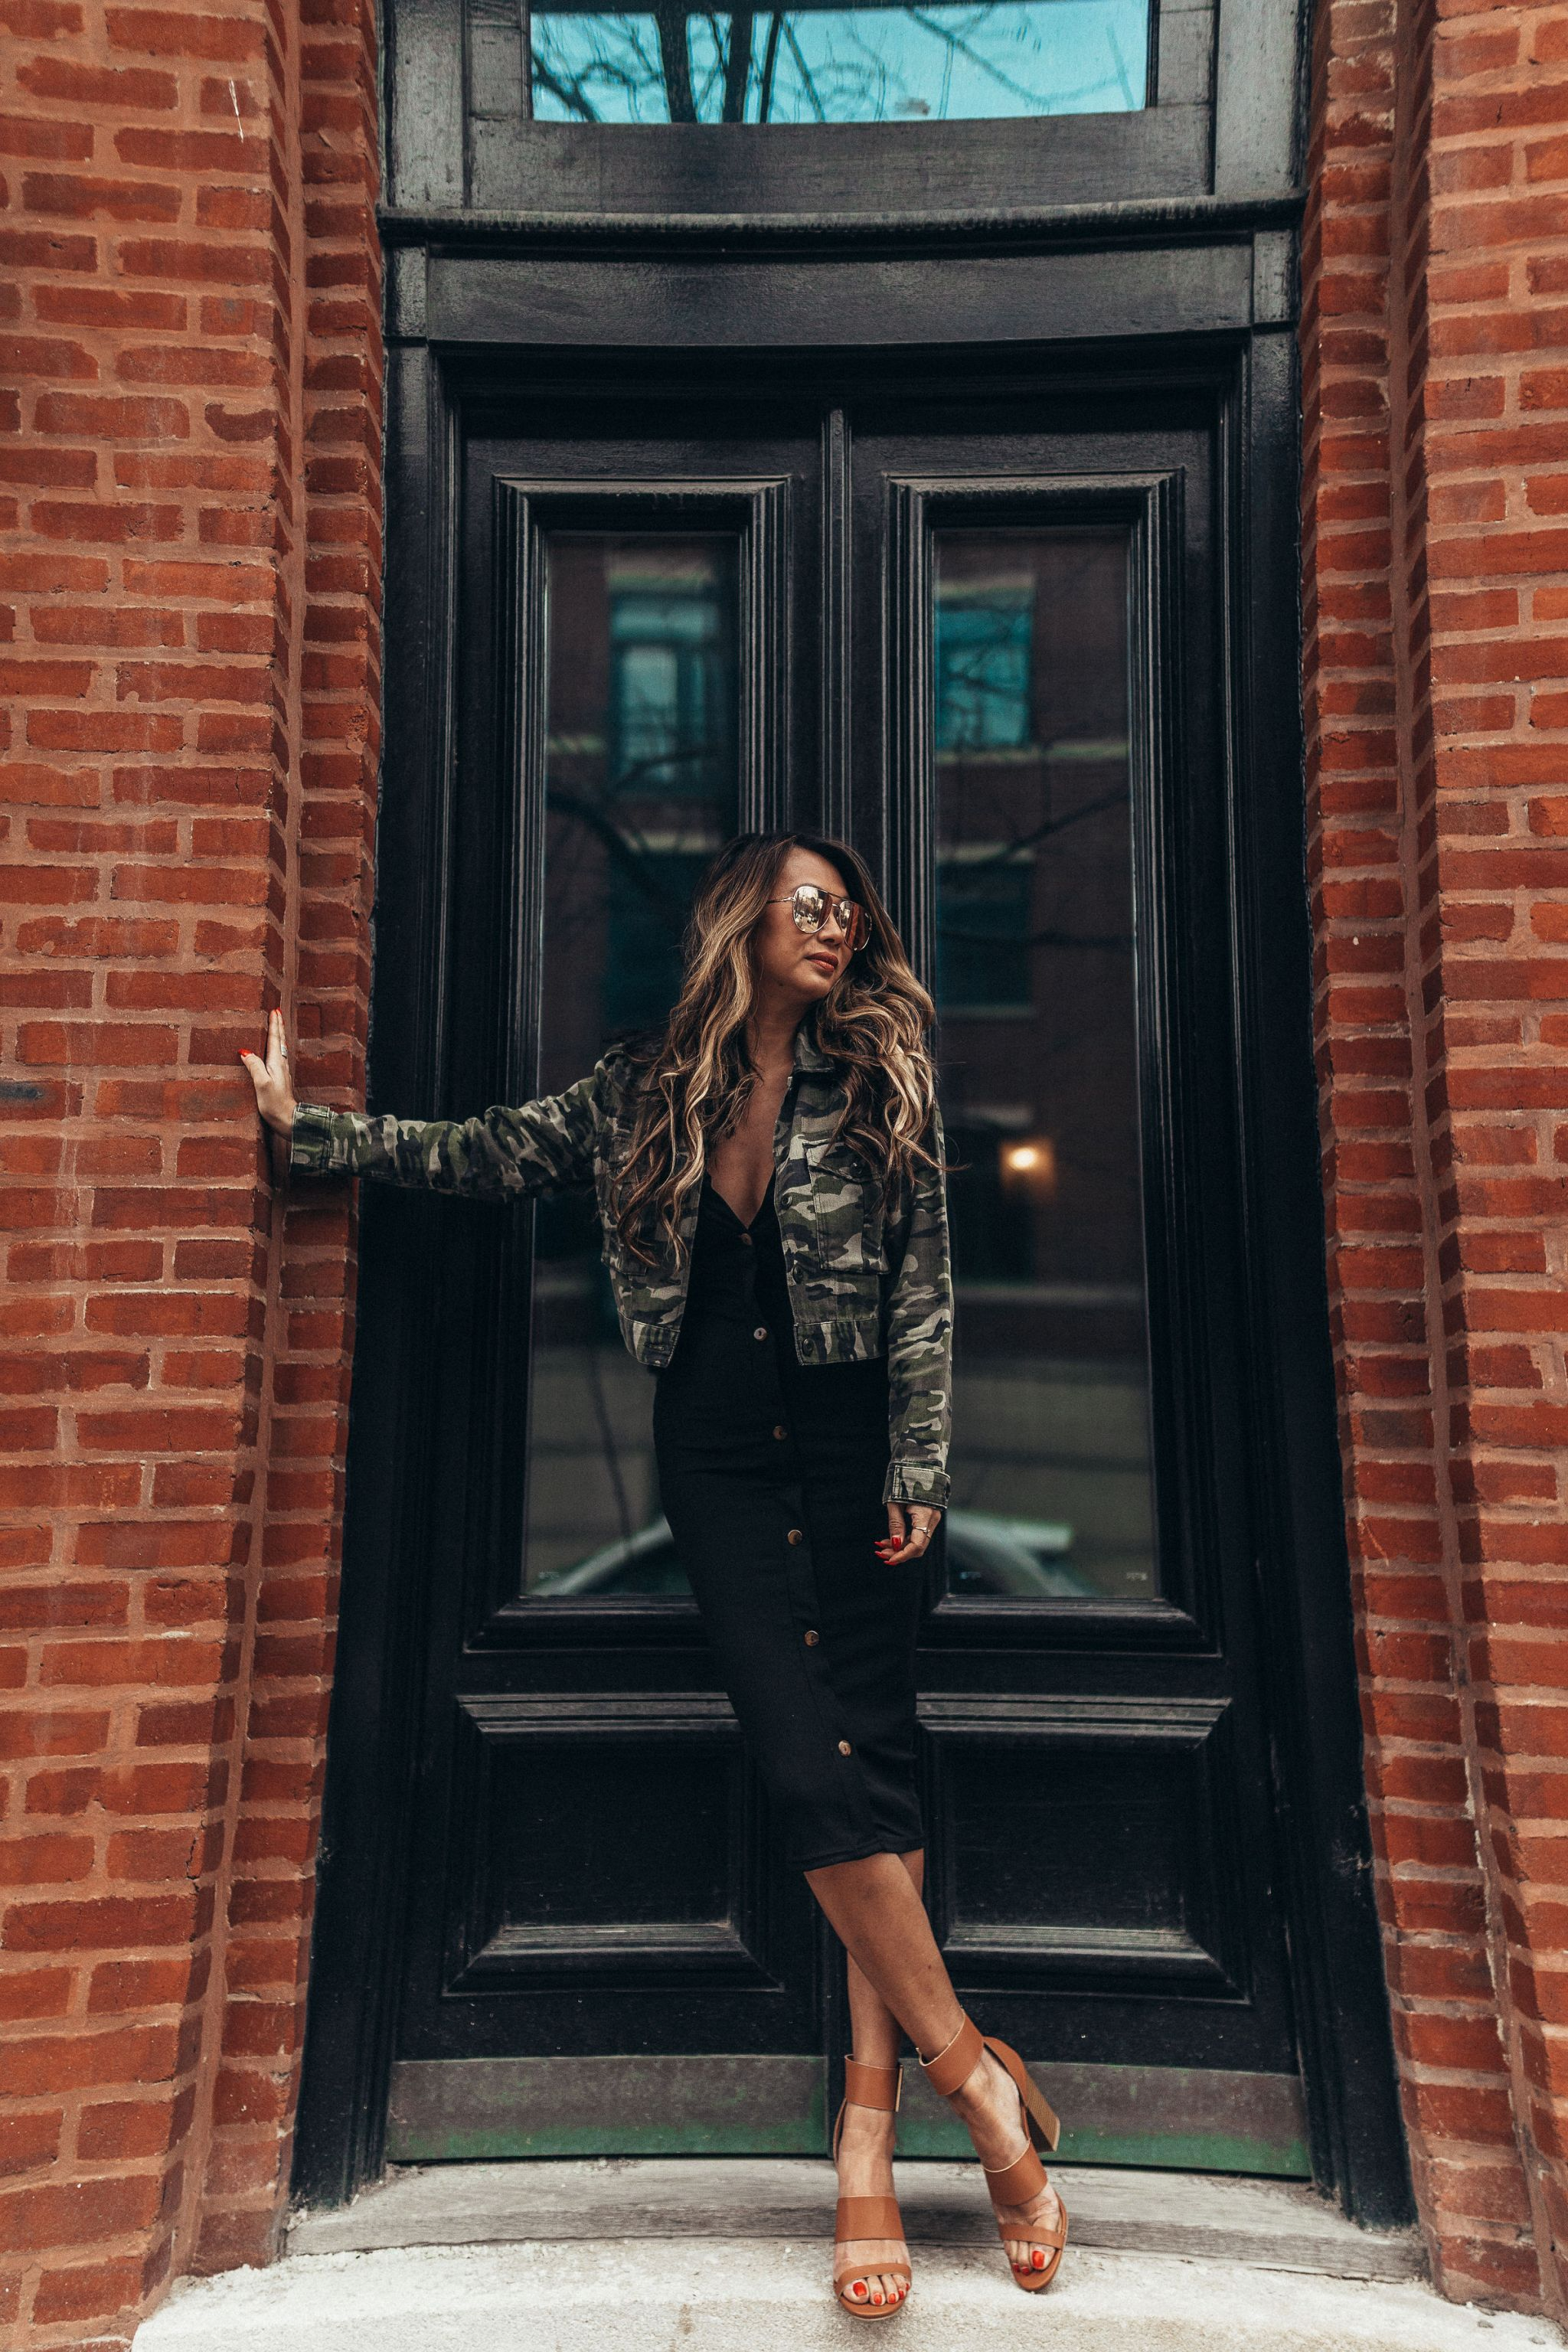 3 ways to style a little black dress, 1 dress 3 ways, how to style a black dress, how to dress up a black midi dress, outfit ideas, fashion blogger, style blogger, street style, how to style a dress multiple ways, camo jacket and black dress, how to style a camo jacket, black dress spring outfit